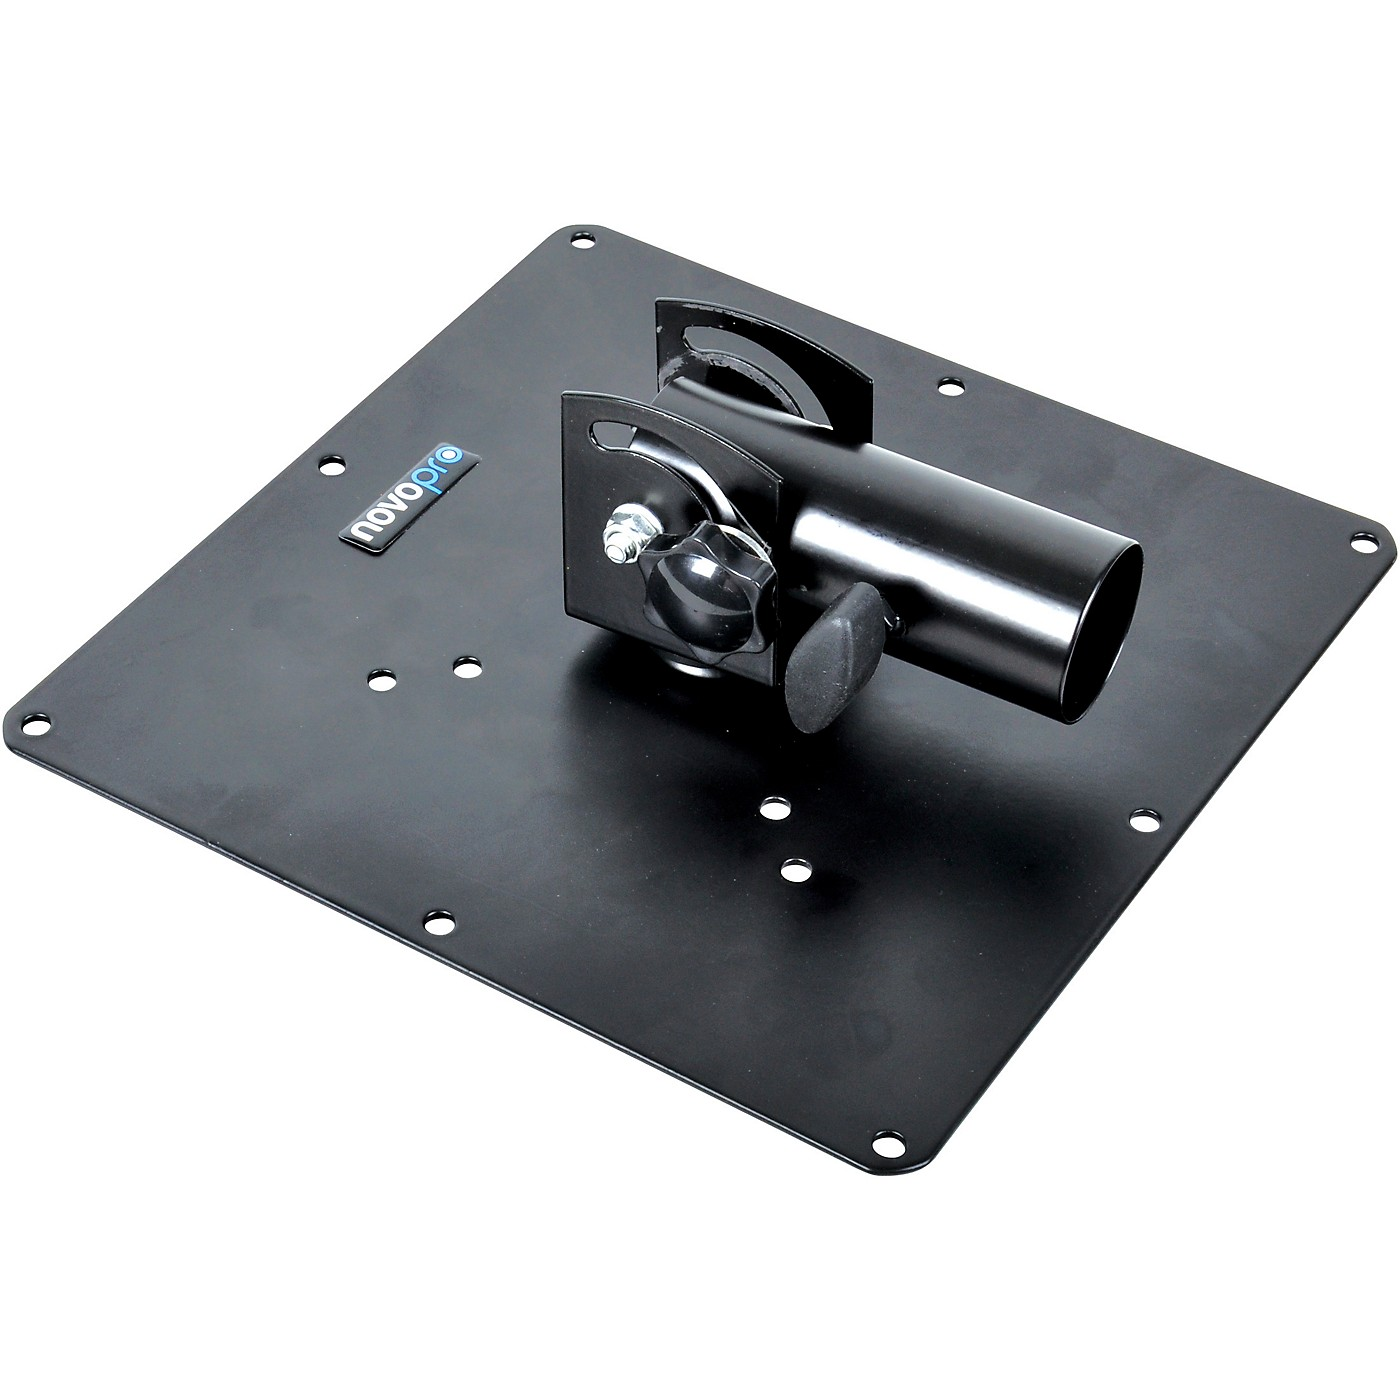 Novopro TVM35 Speaker Stand Fixture Mounting Plate thumbnail